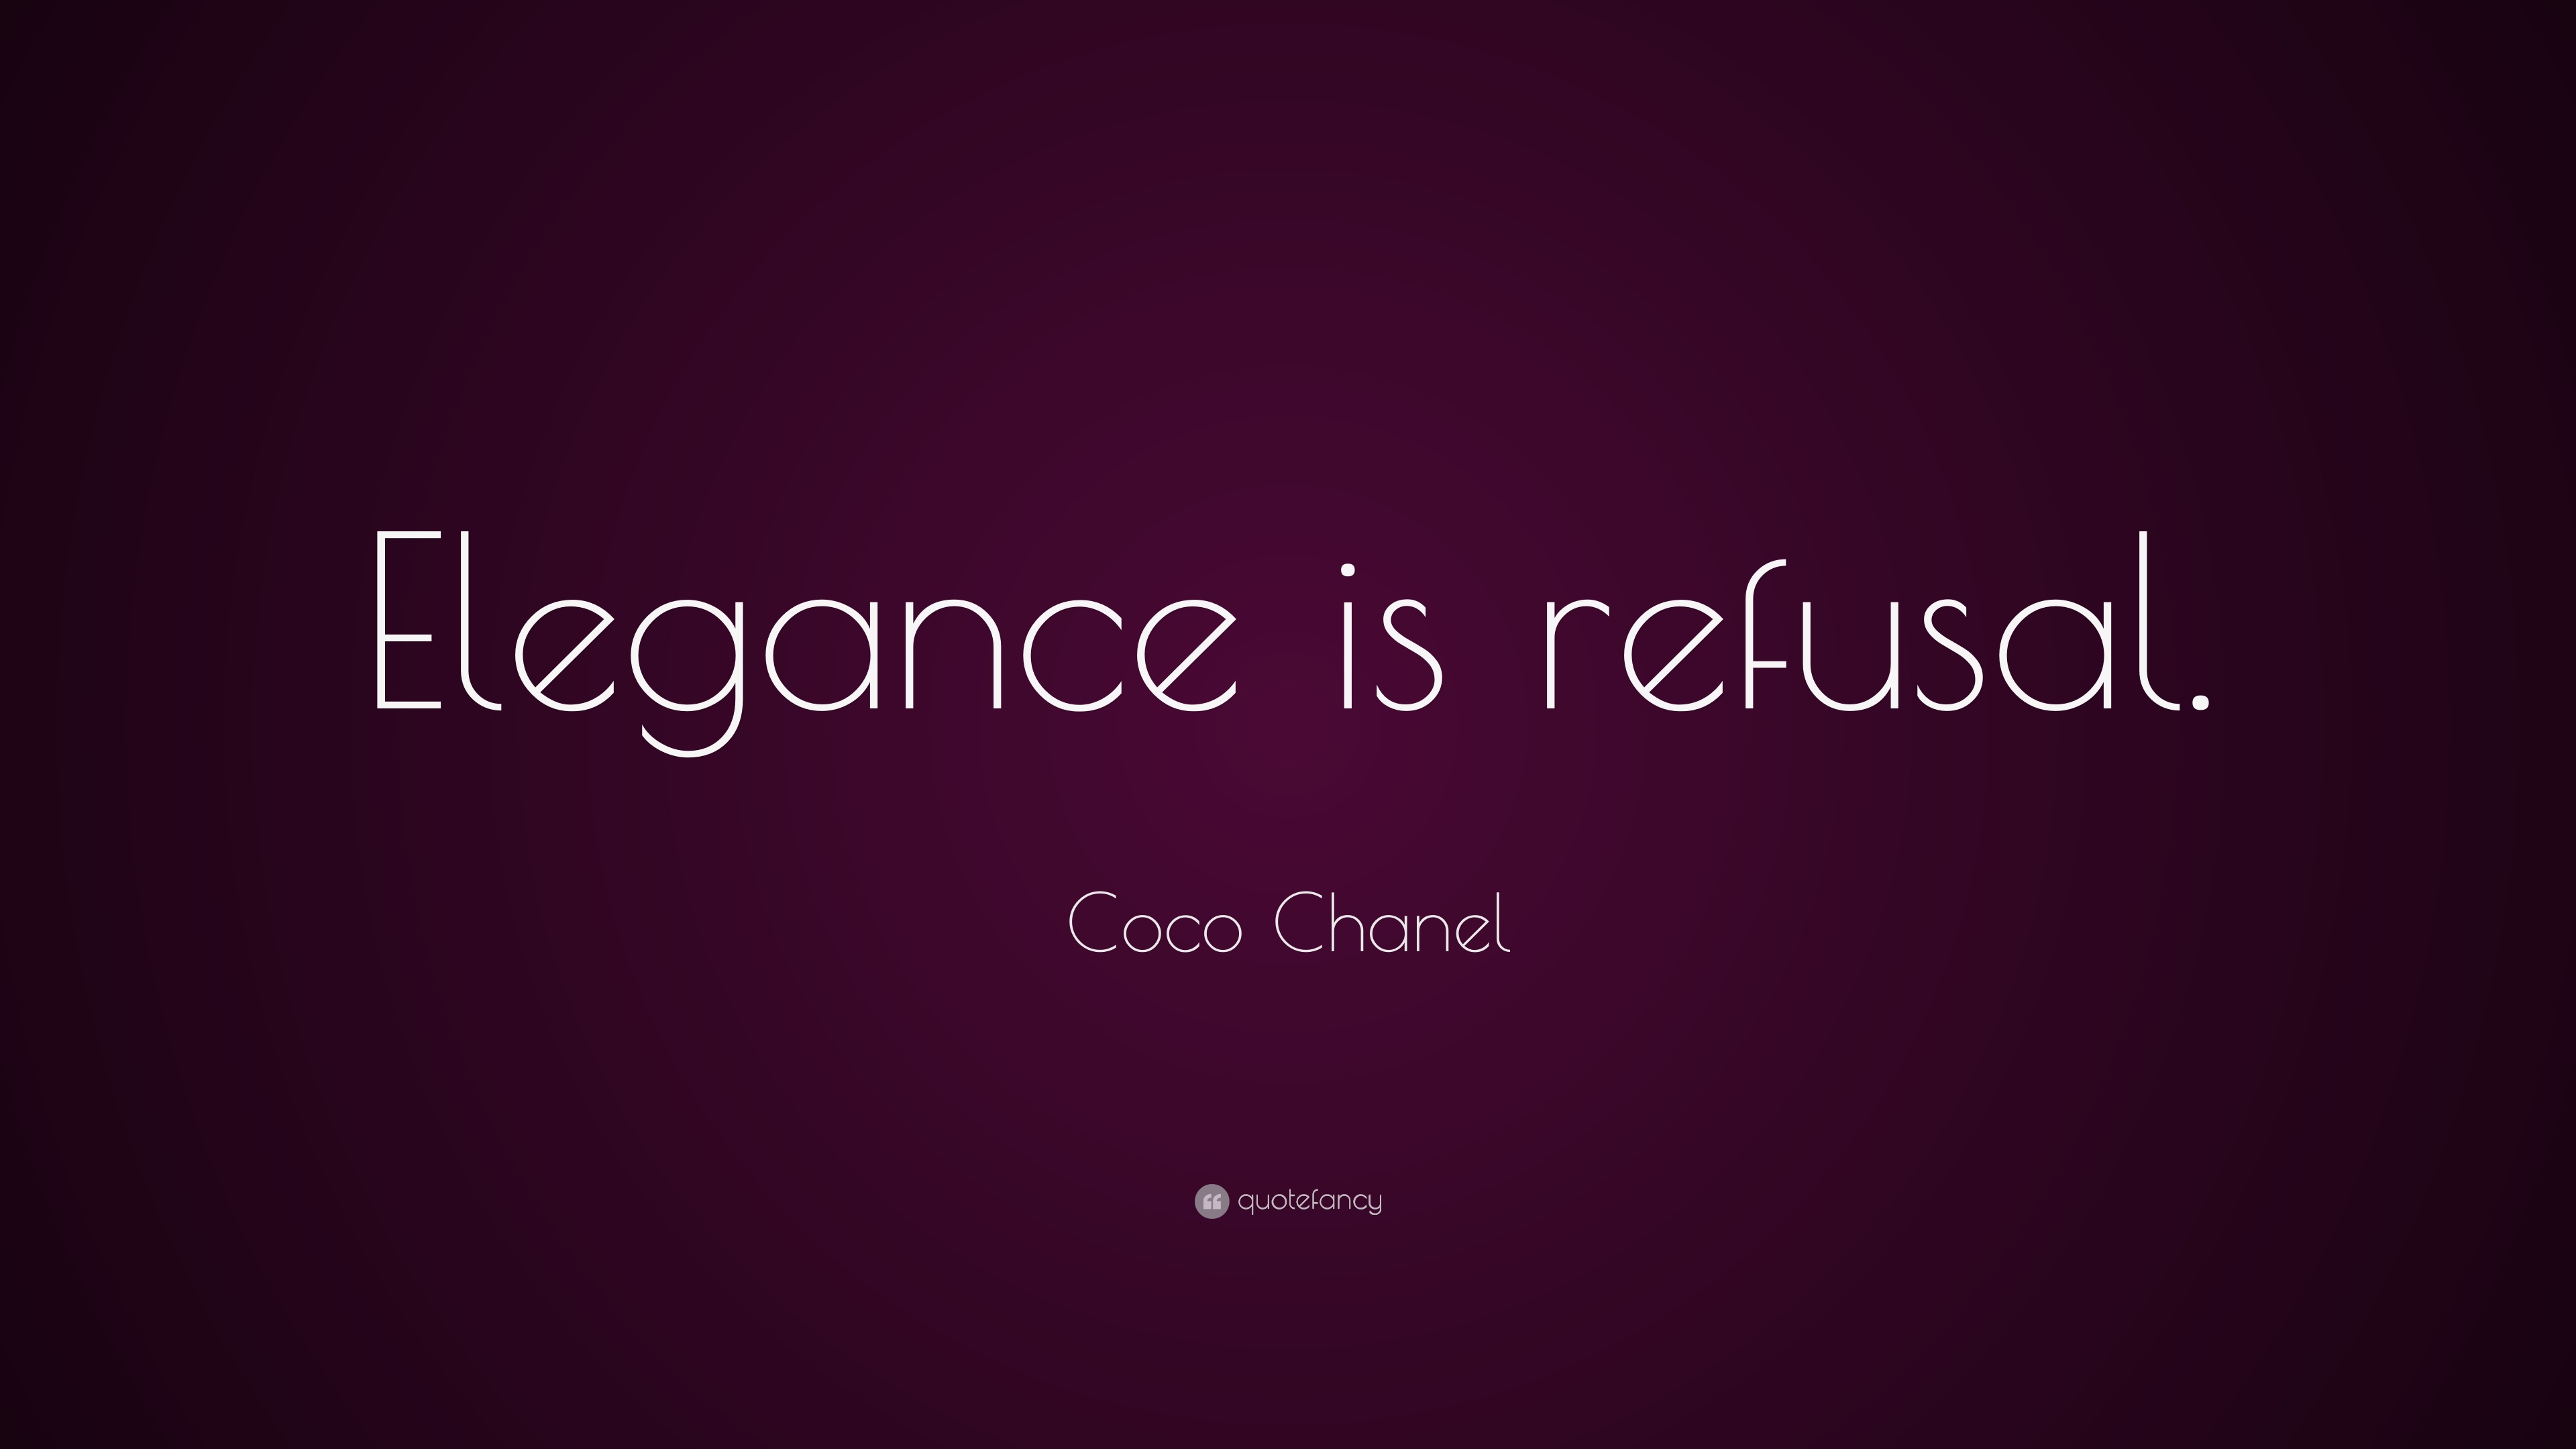 Hindi Quotes Wallpaper Hd Download Coco Chanel Quotes Wallpaper Gallery